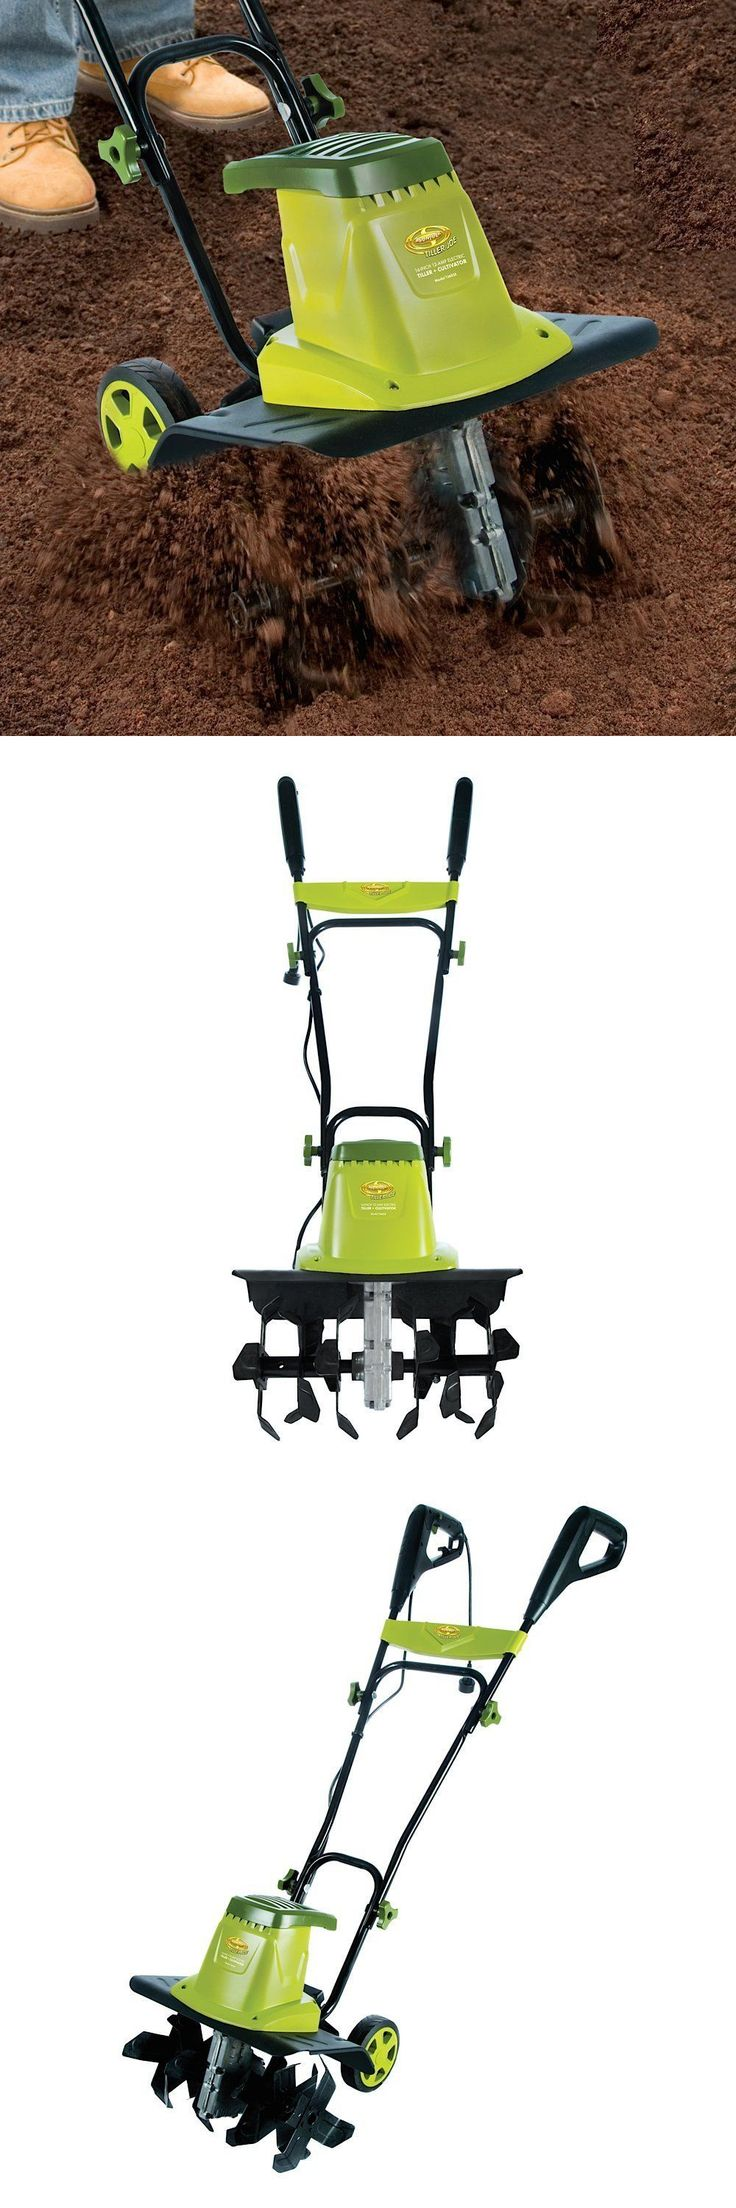 Tillers 29519: Rotary Tiller Electric Front Tine Cultivator Dirt Garden Power Yard Rototiller -> BUY IT NOW ONLY: $167.99 on eBay!